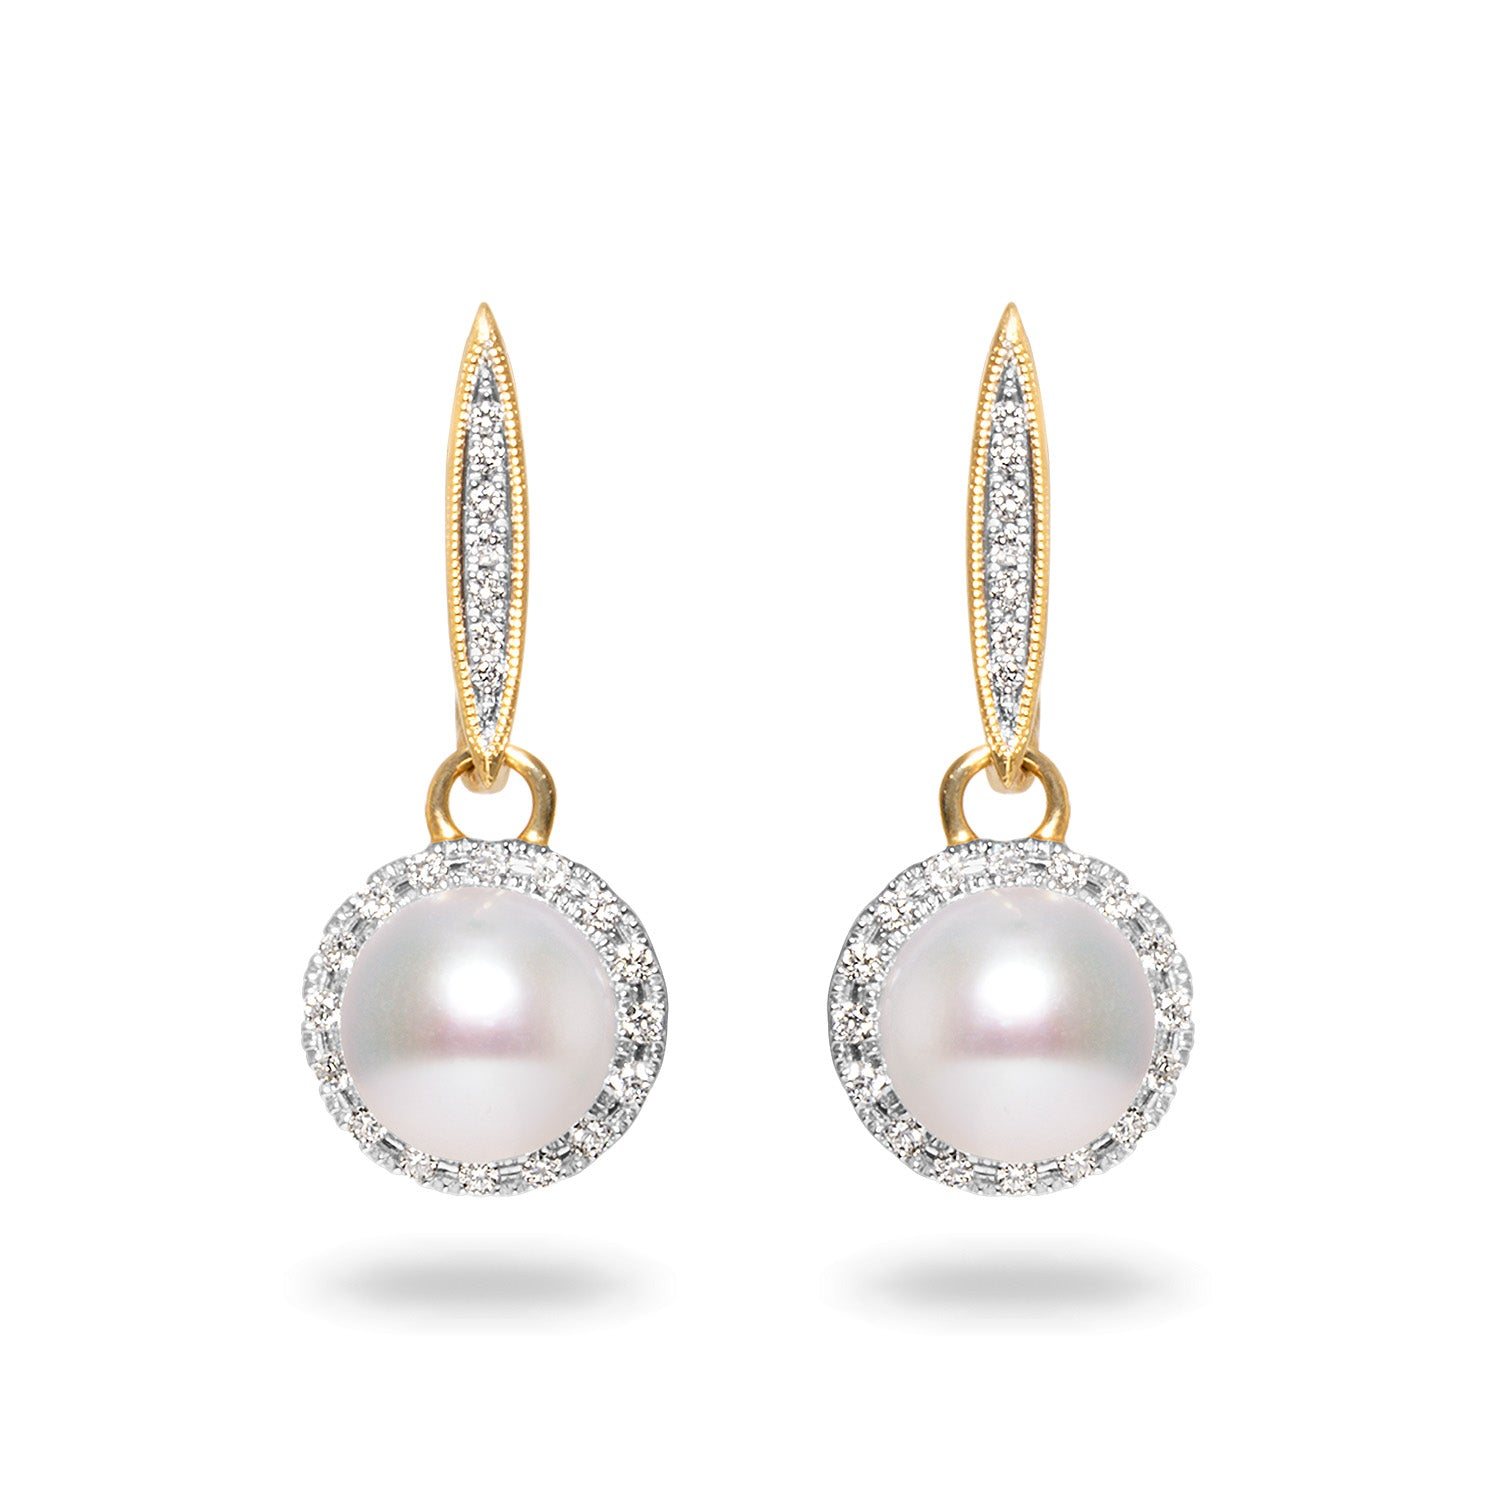 8.5-9mm Akoya Pearl and Diamond Earrings